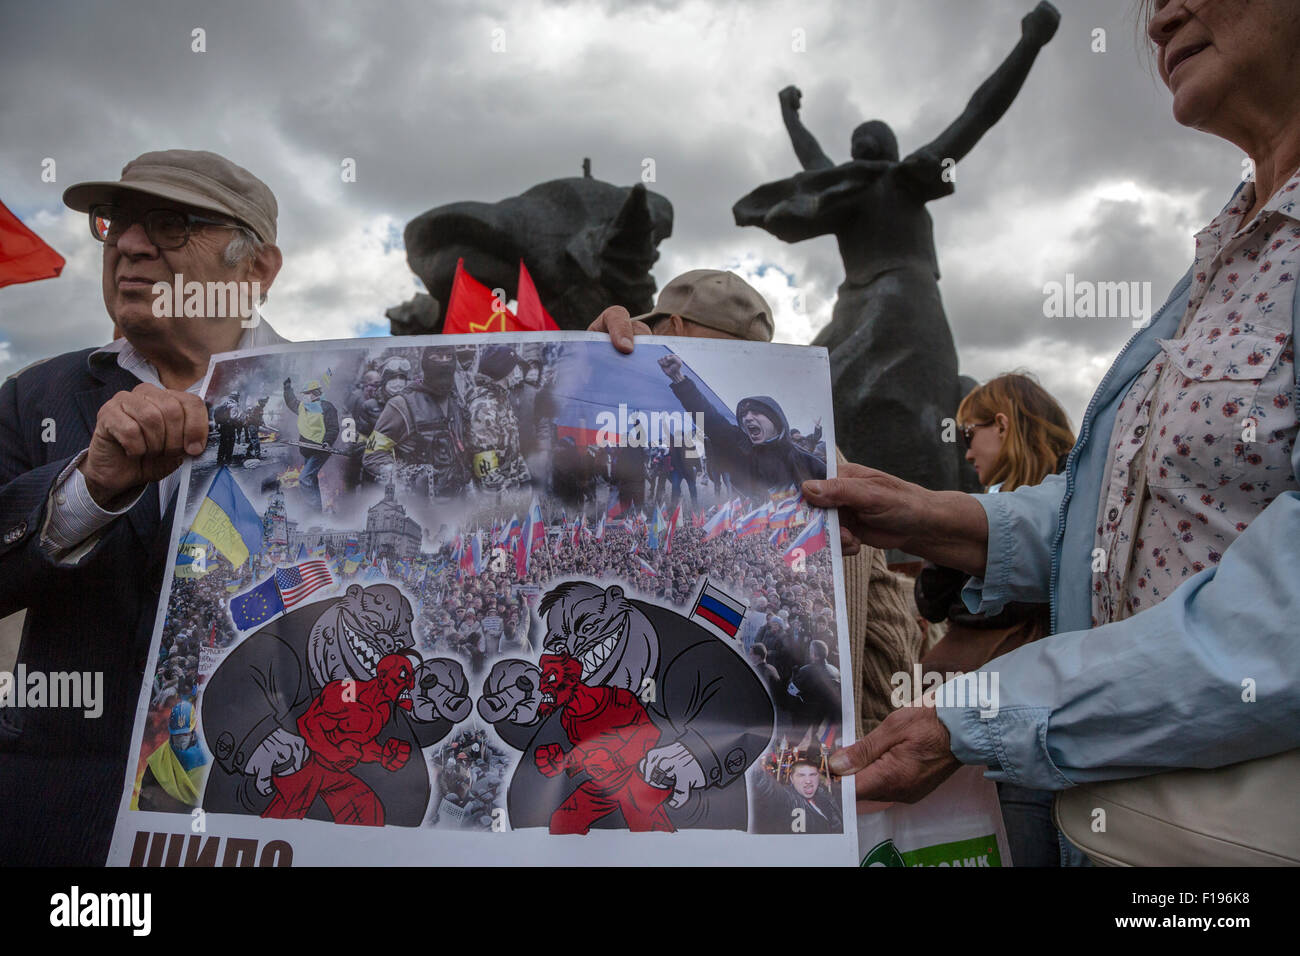 Moscow, Russia. 30th Aug, 2015. Activists hold a banner against the conflict in Ukraine during a rally against the - Stock Image